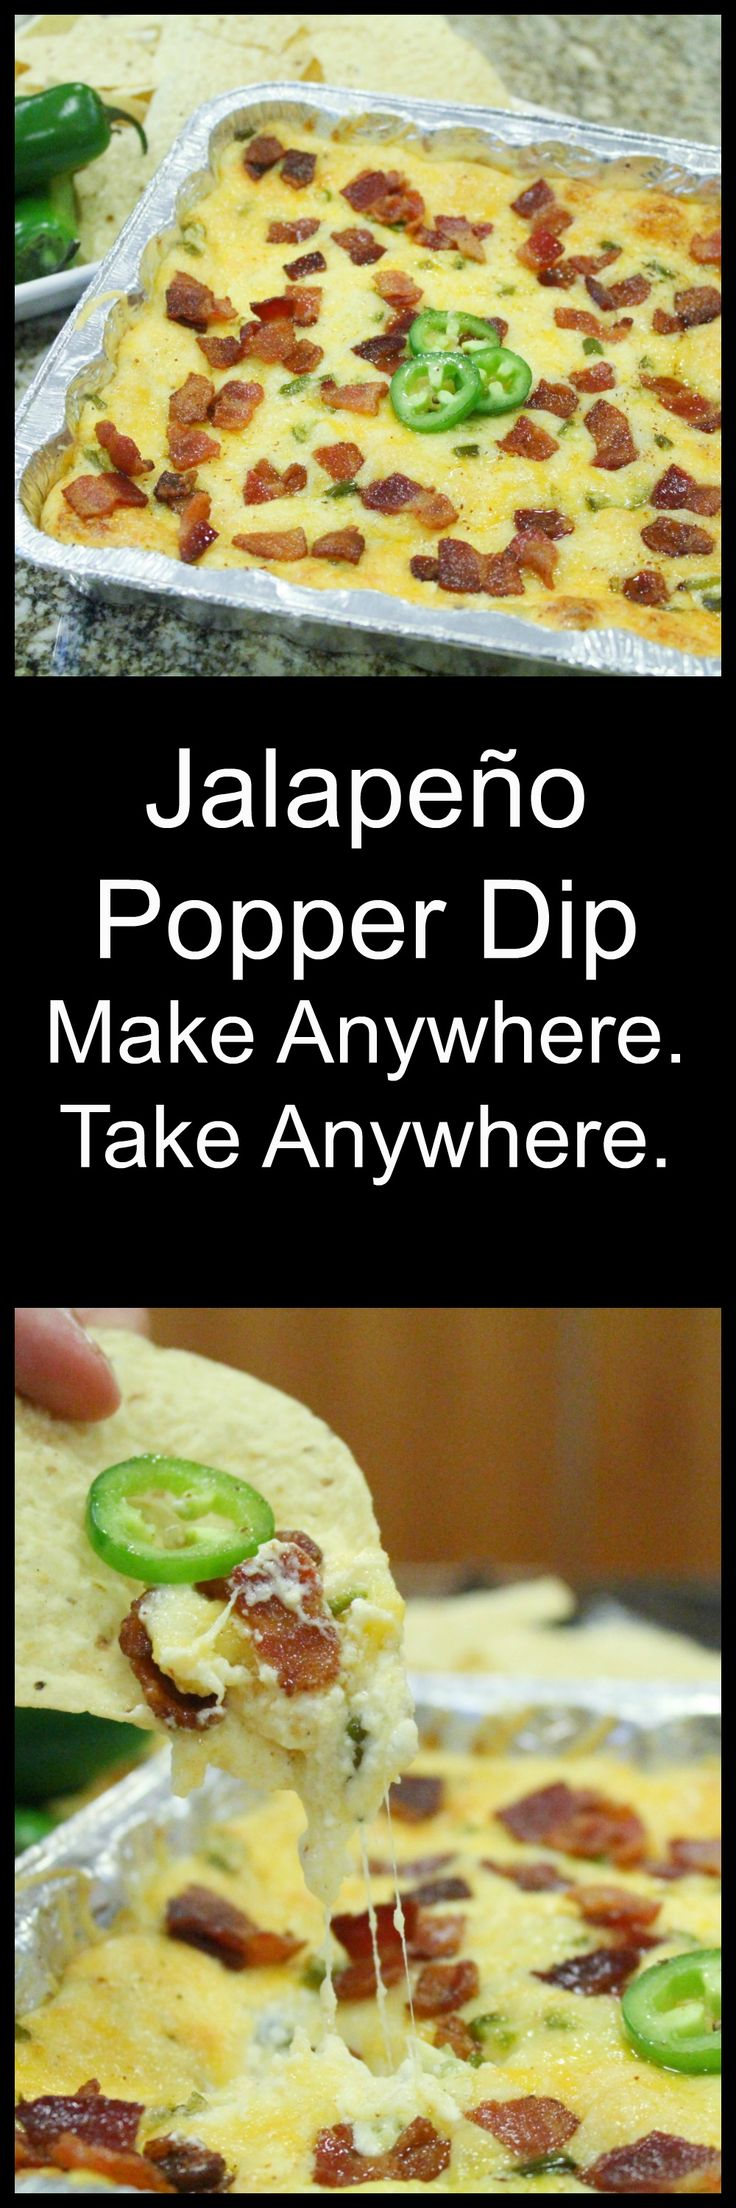 When You Need A Super Easy Make Anywhere Take Appetizer That Will Please Everyone Camping FoodsFood